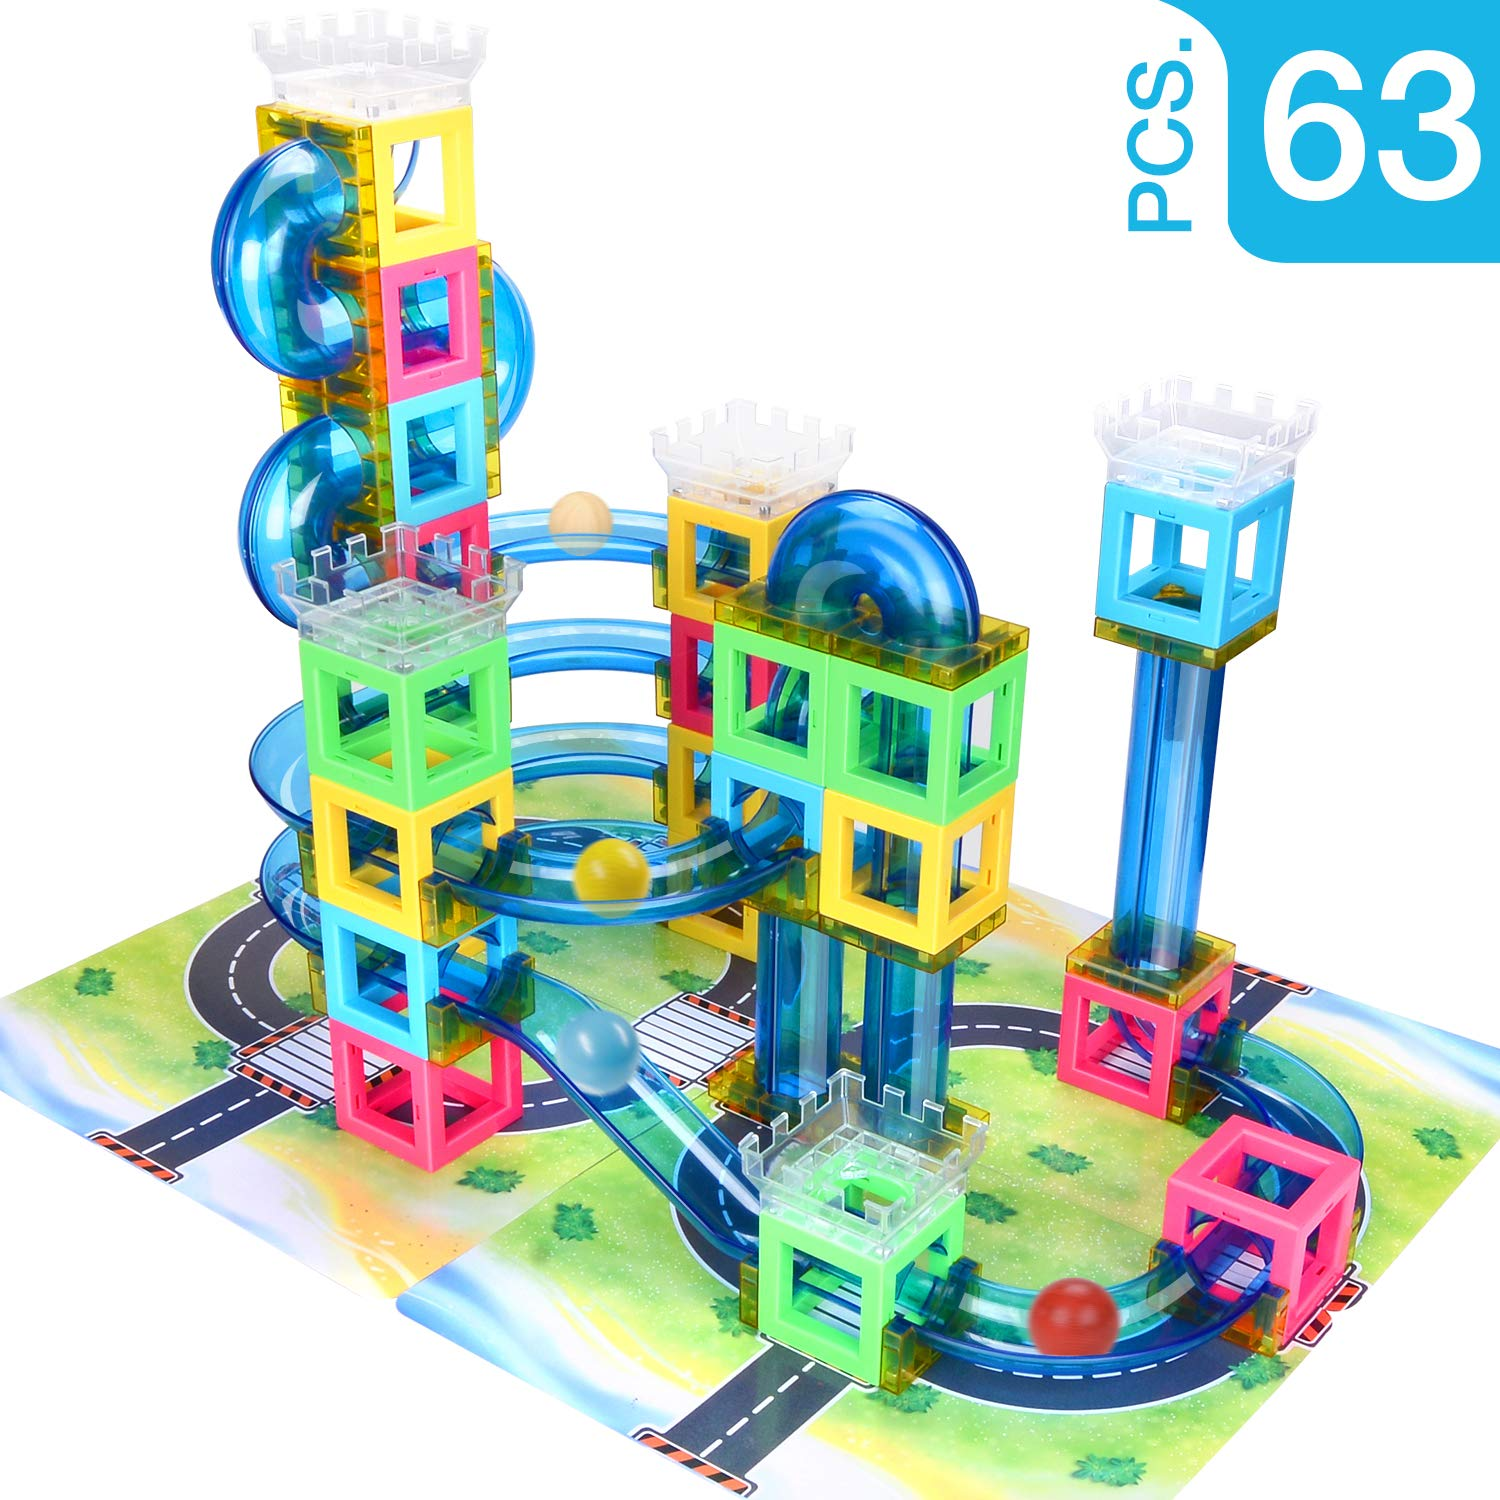 Gamenote Marble Run Set Game - 63pcs Marble Maze Race Track Learning Toy for Kids, Construction Child Education Toys (Storage Bag and Guidebook Include)